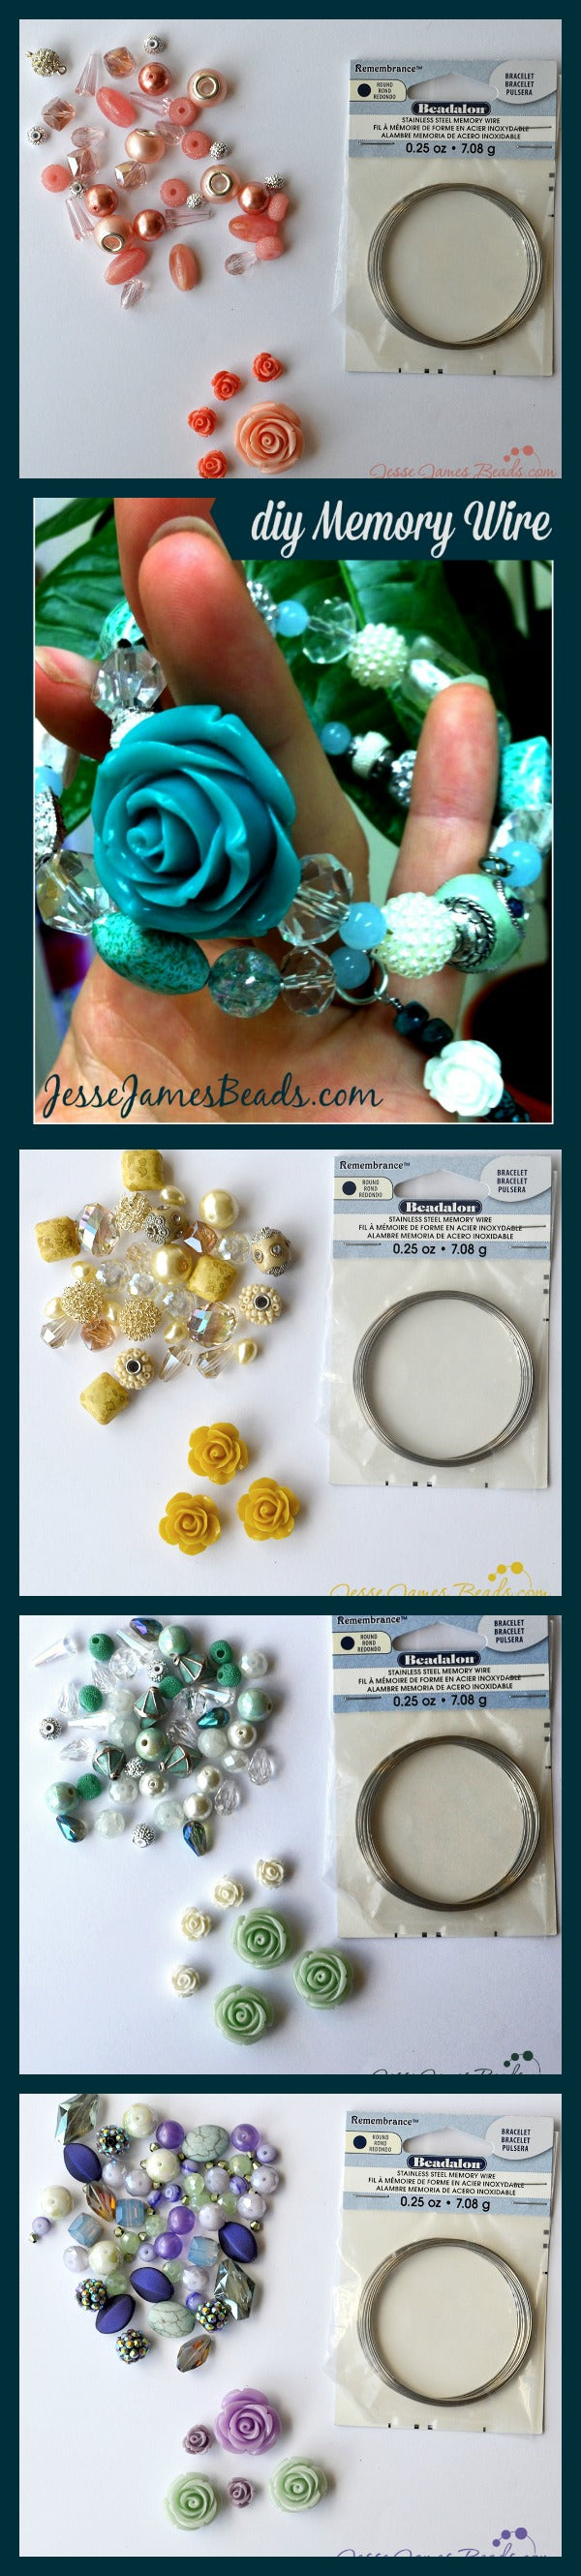 Mothers Day DIY Gift Idea - Floral Memory Wire Bracelet Kits from Jesse James Beads